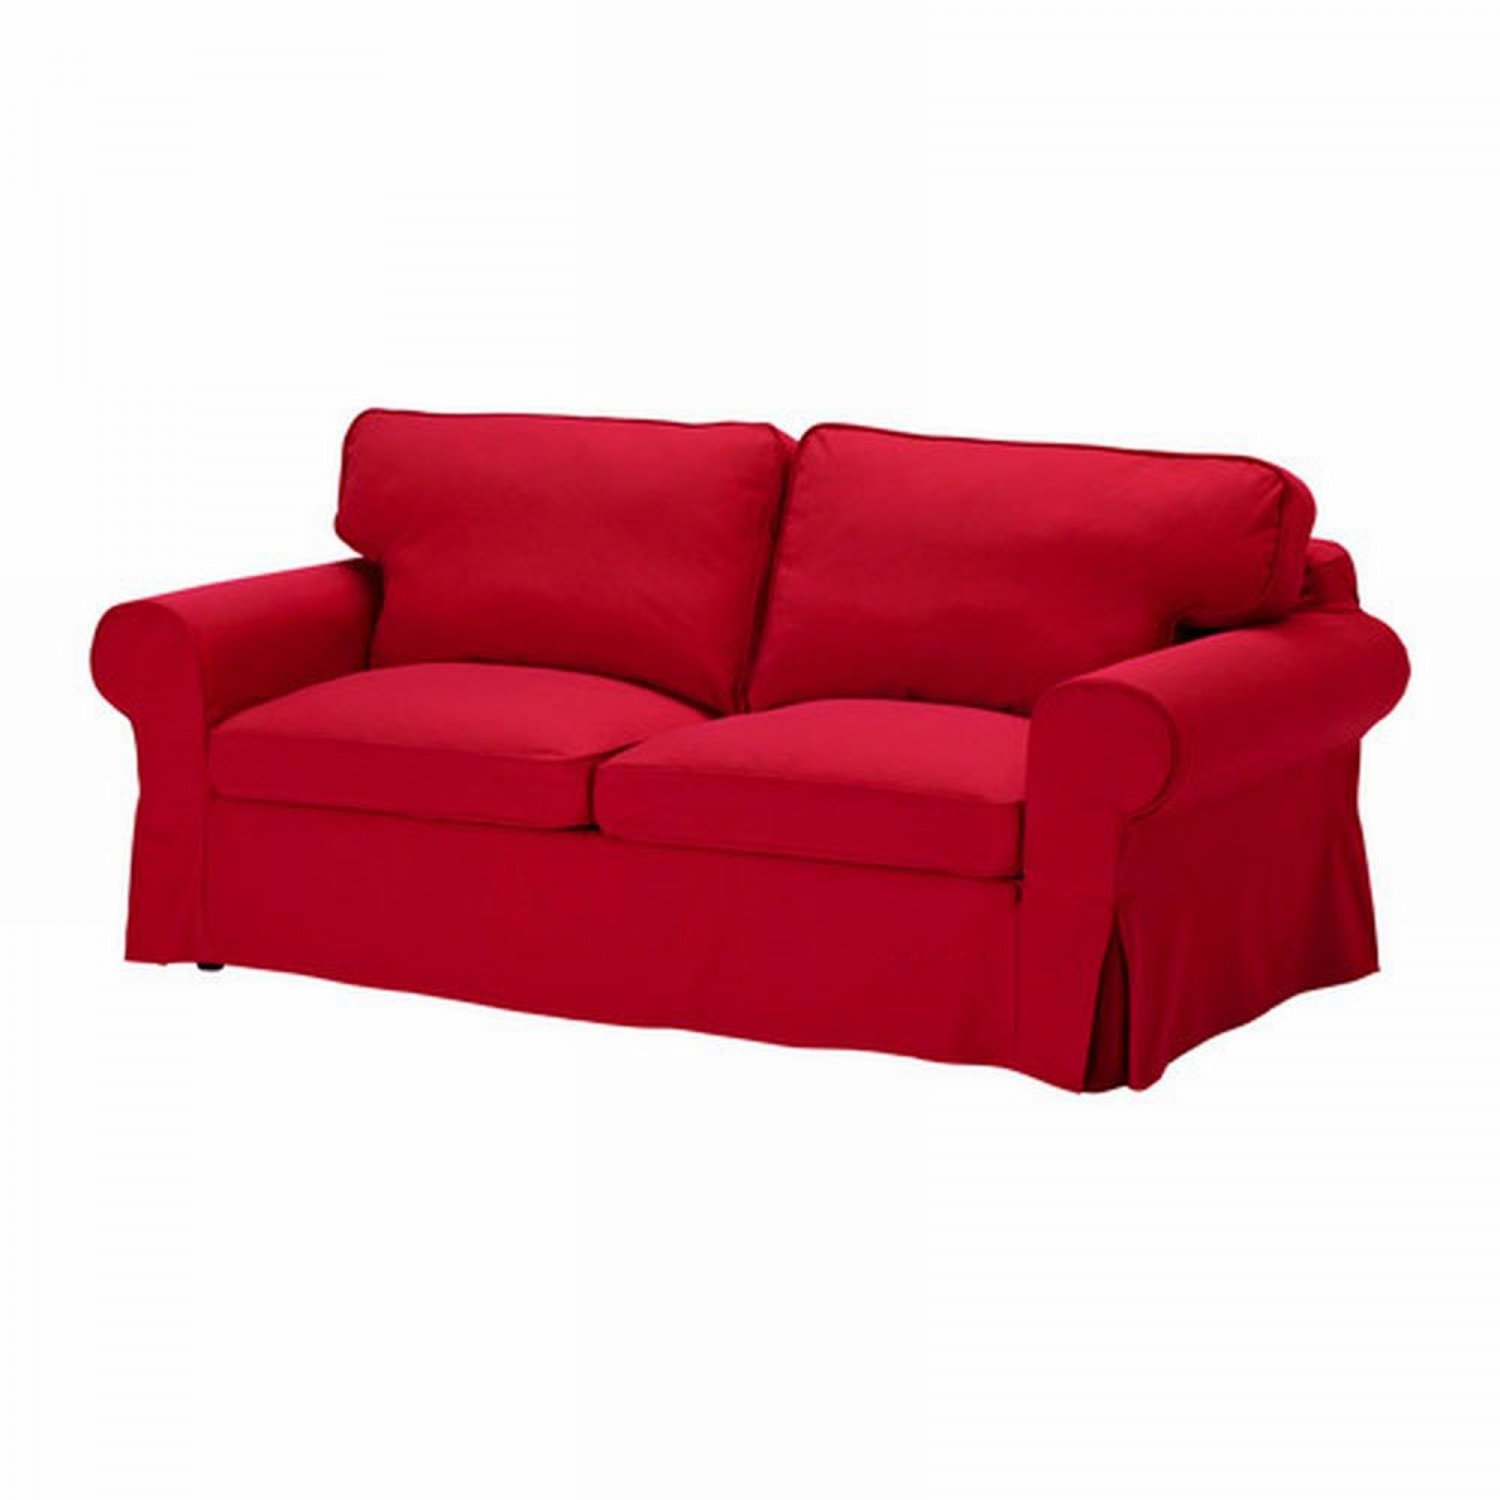 Ikea ektorp sofa bed slipcover cover idemo red sofabed cvr Ikea divan beds